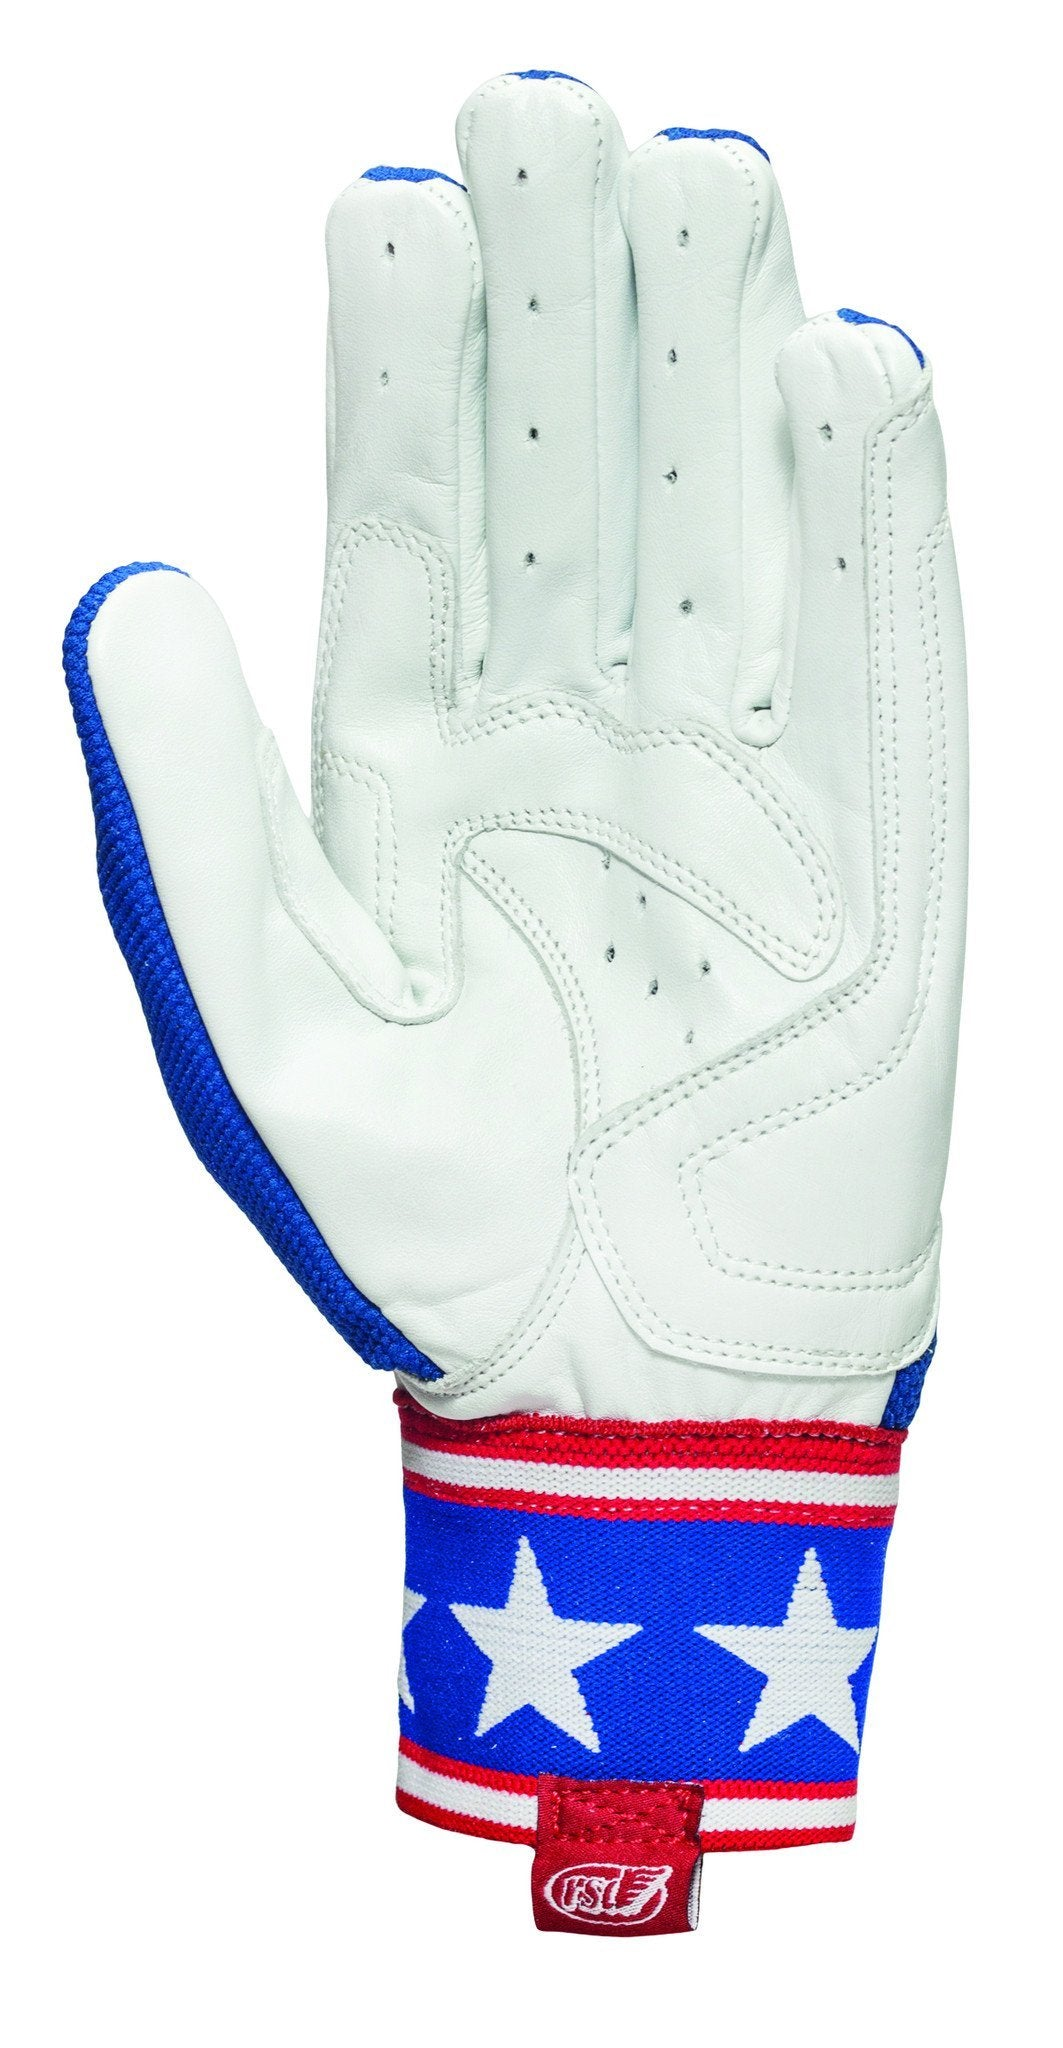 Roland Sands Design - Roland Sands Design Peristyle Gloves - White - Gloves - Salt Flats Clothing